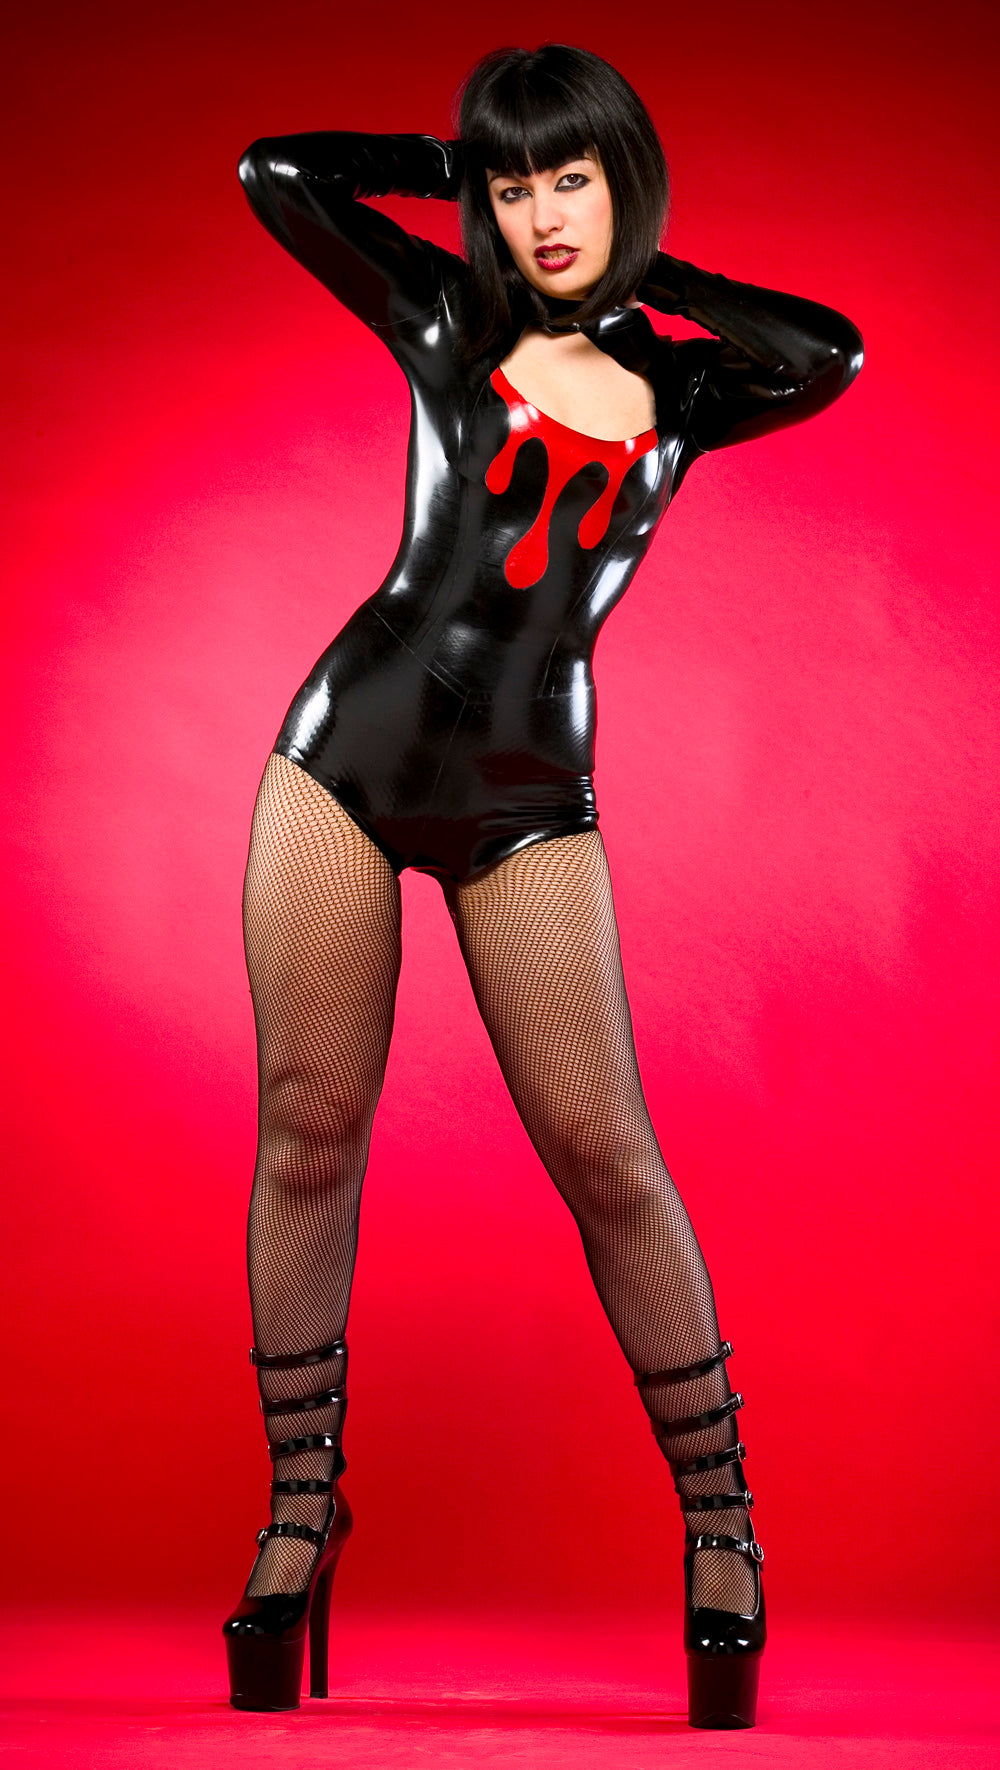 Latex dripping blood playsuit